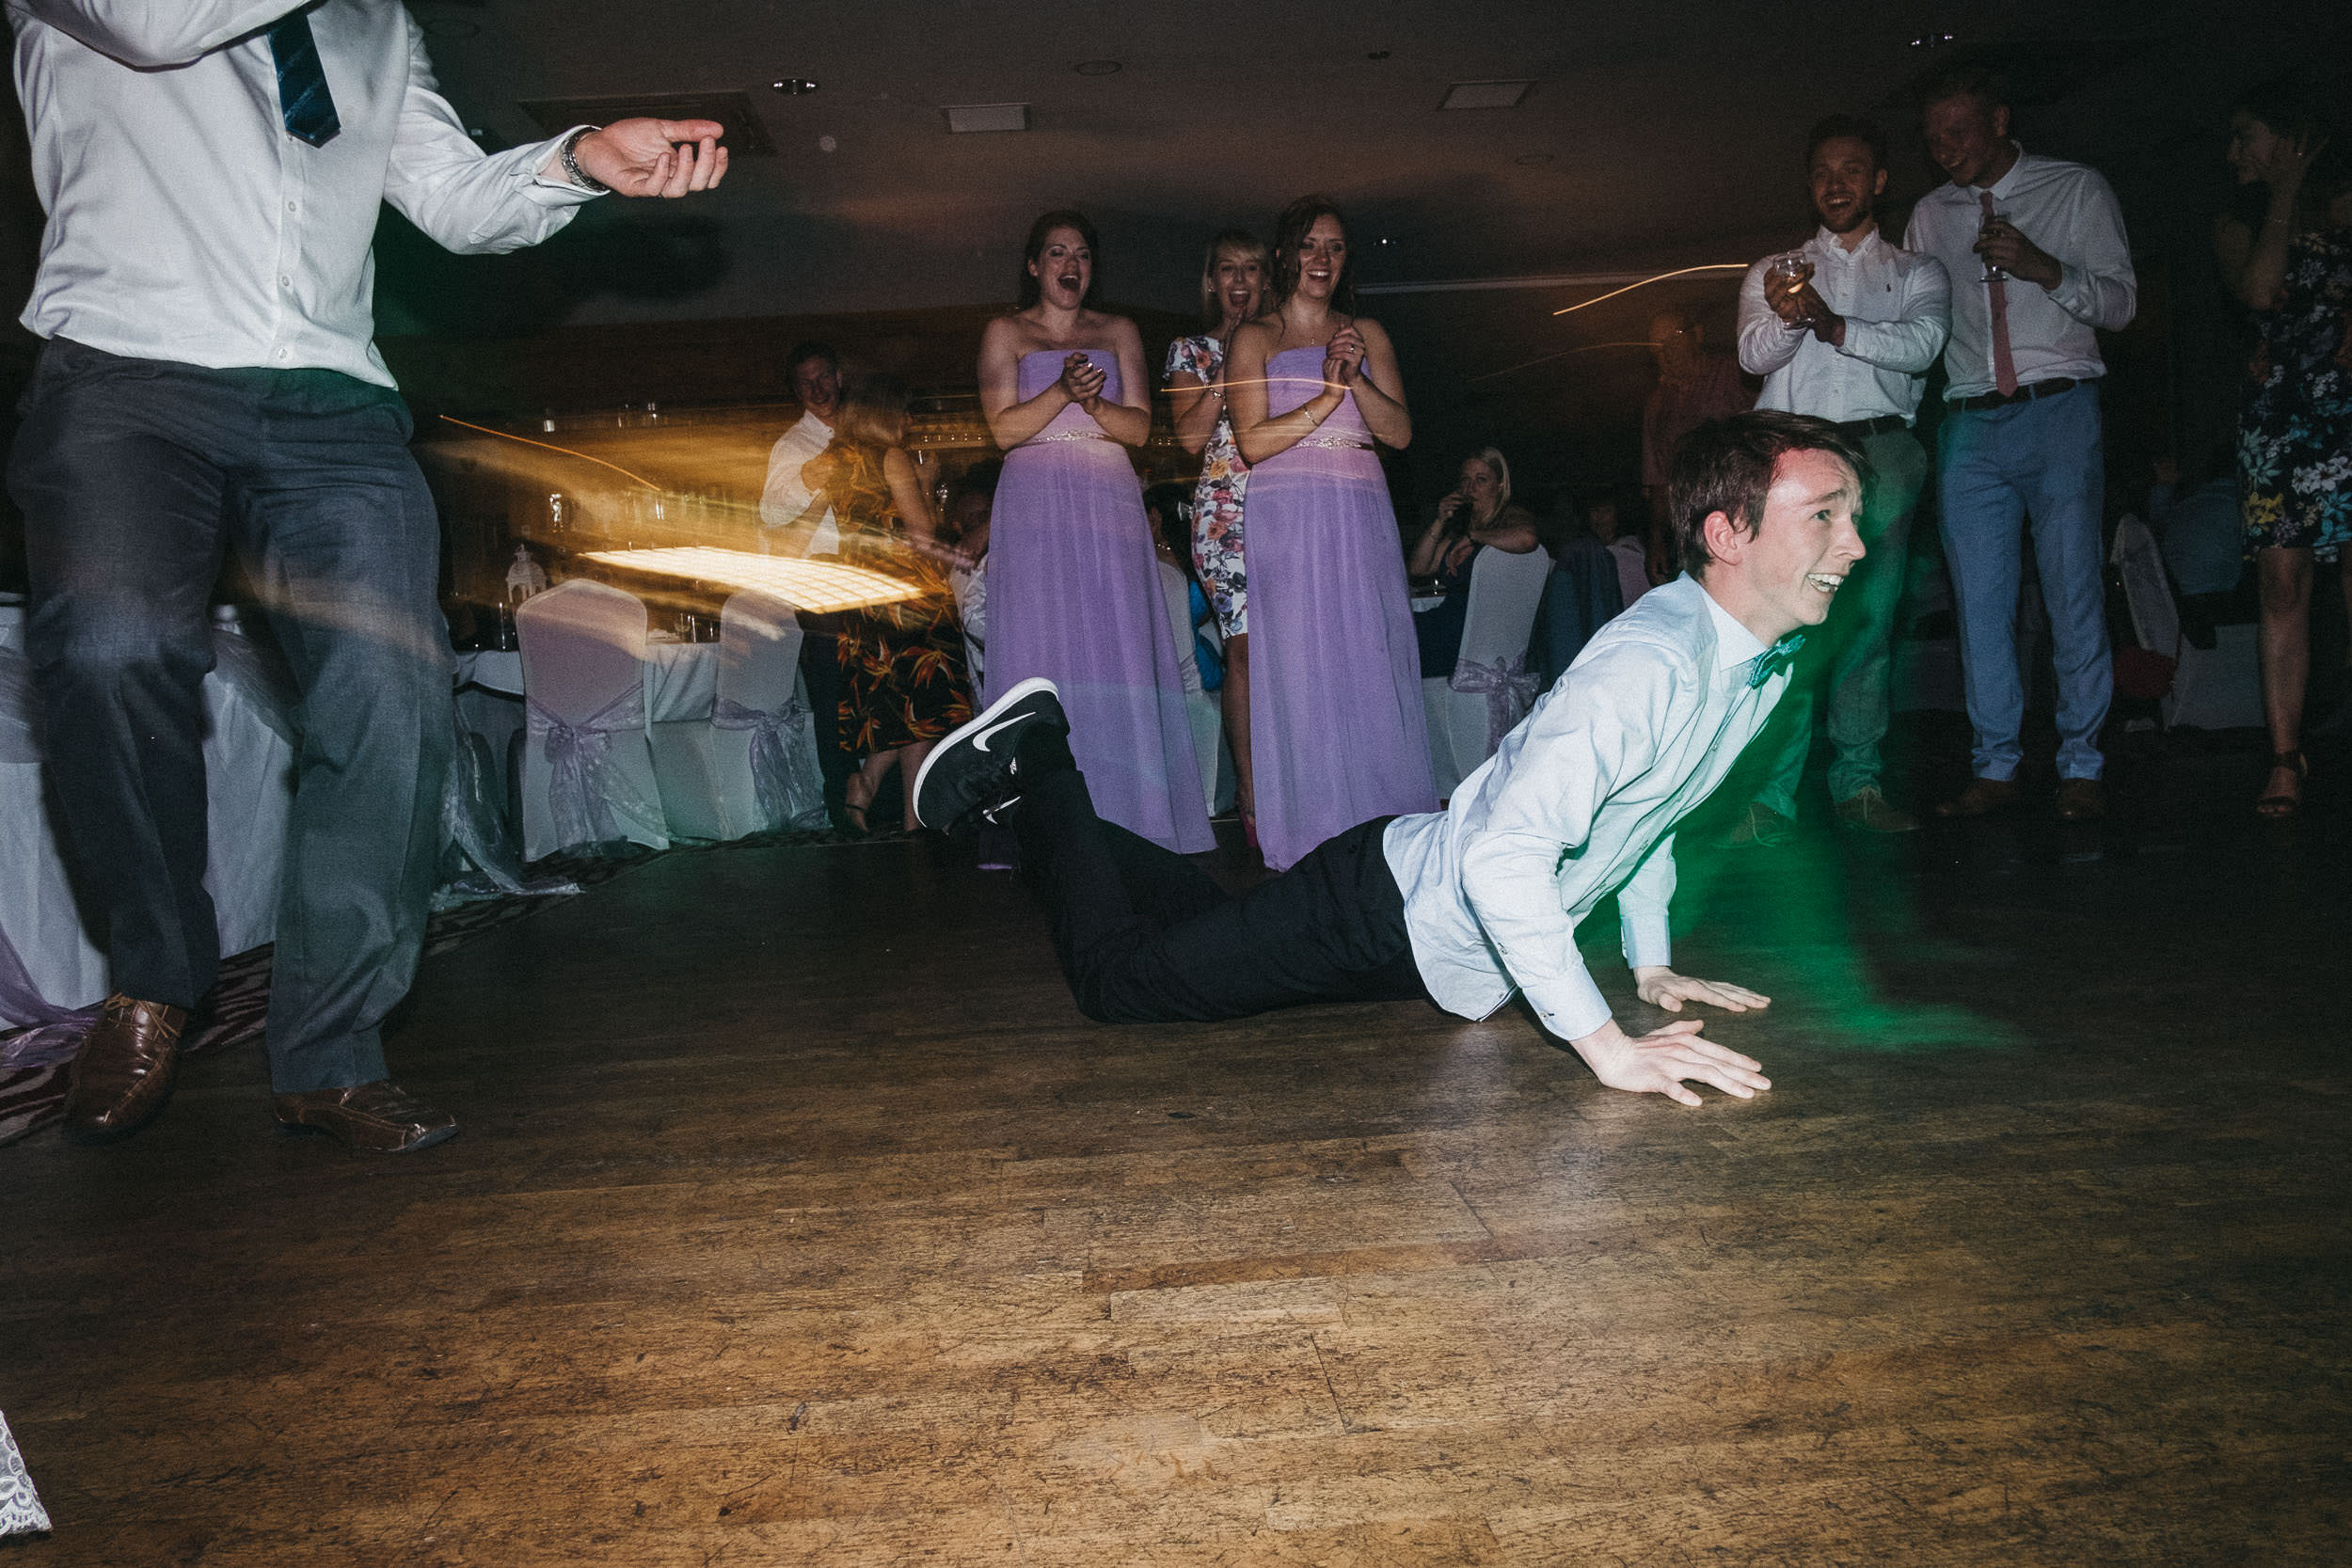 Young wedding guest breakdancing